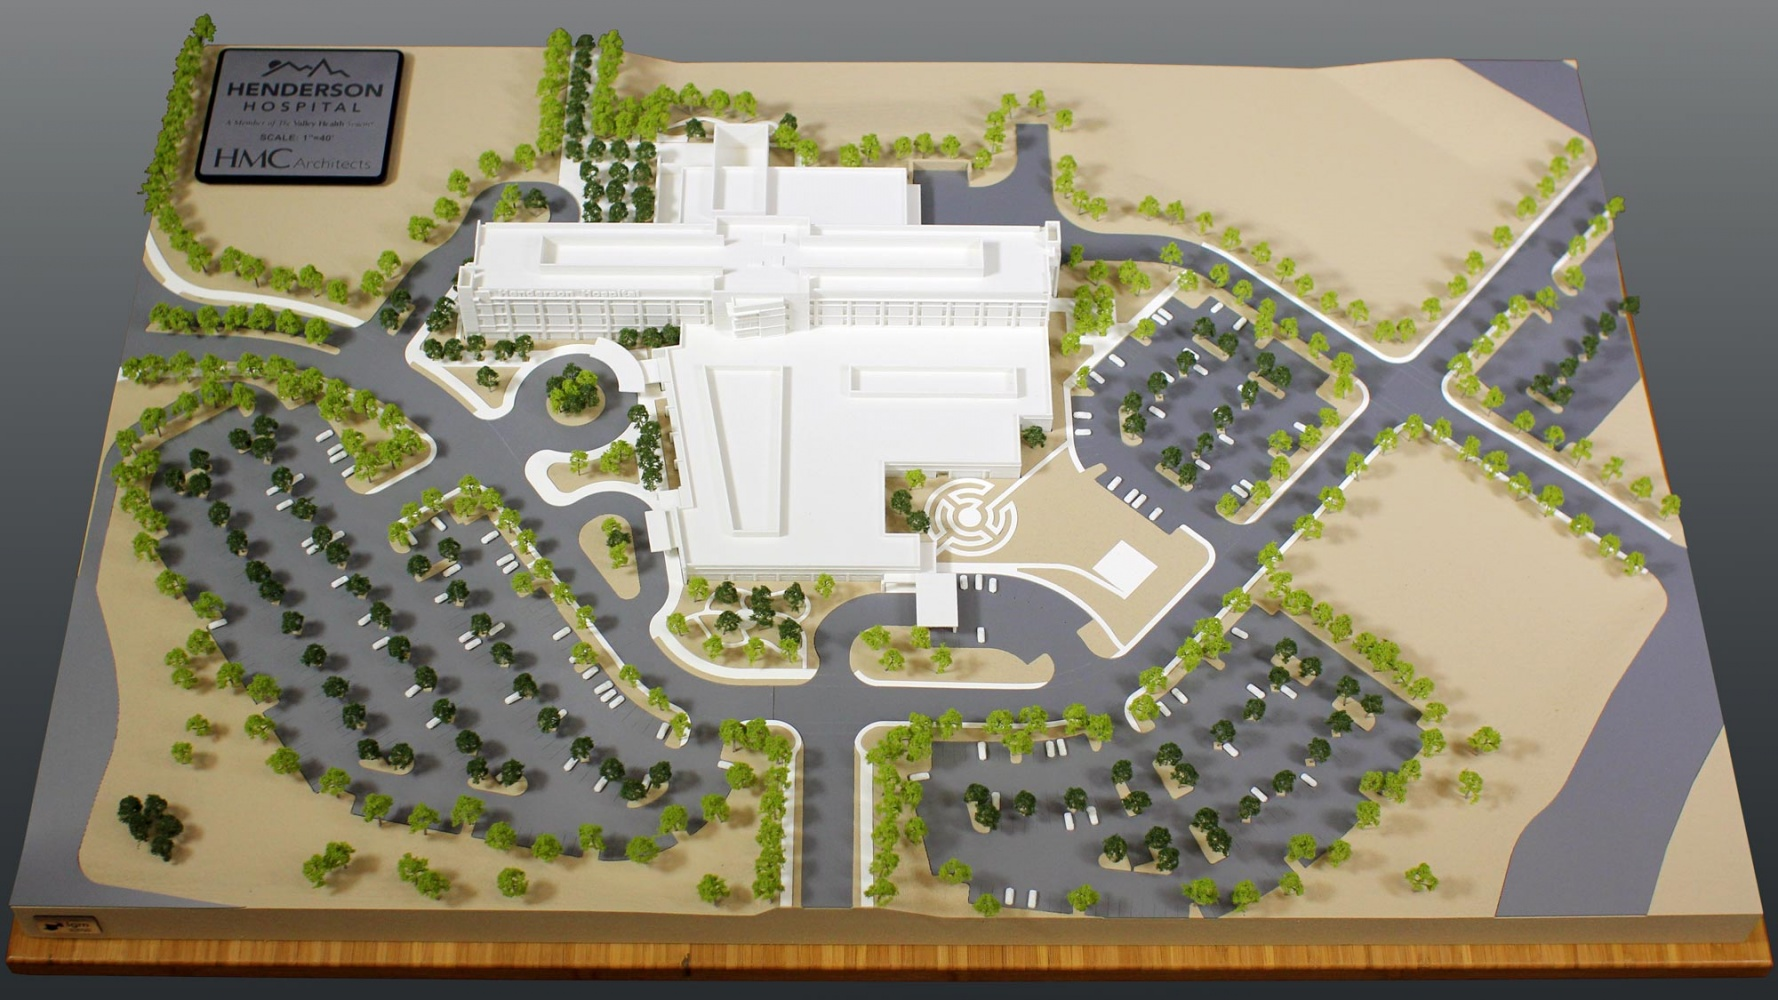 Henderson Hospital architectural model